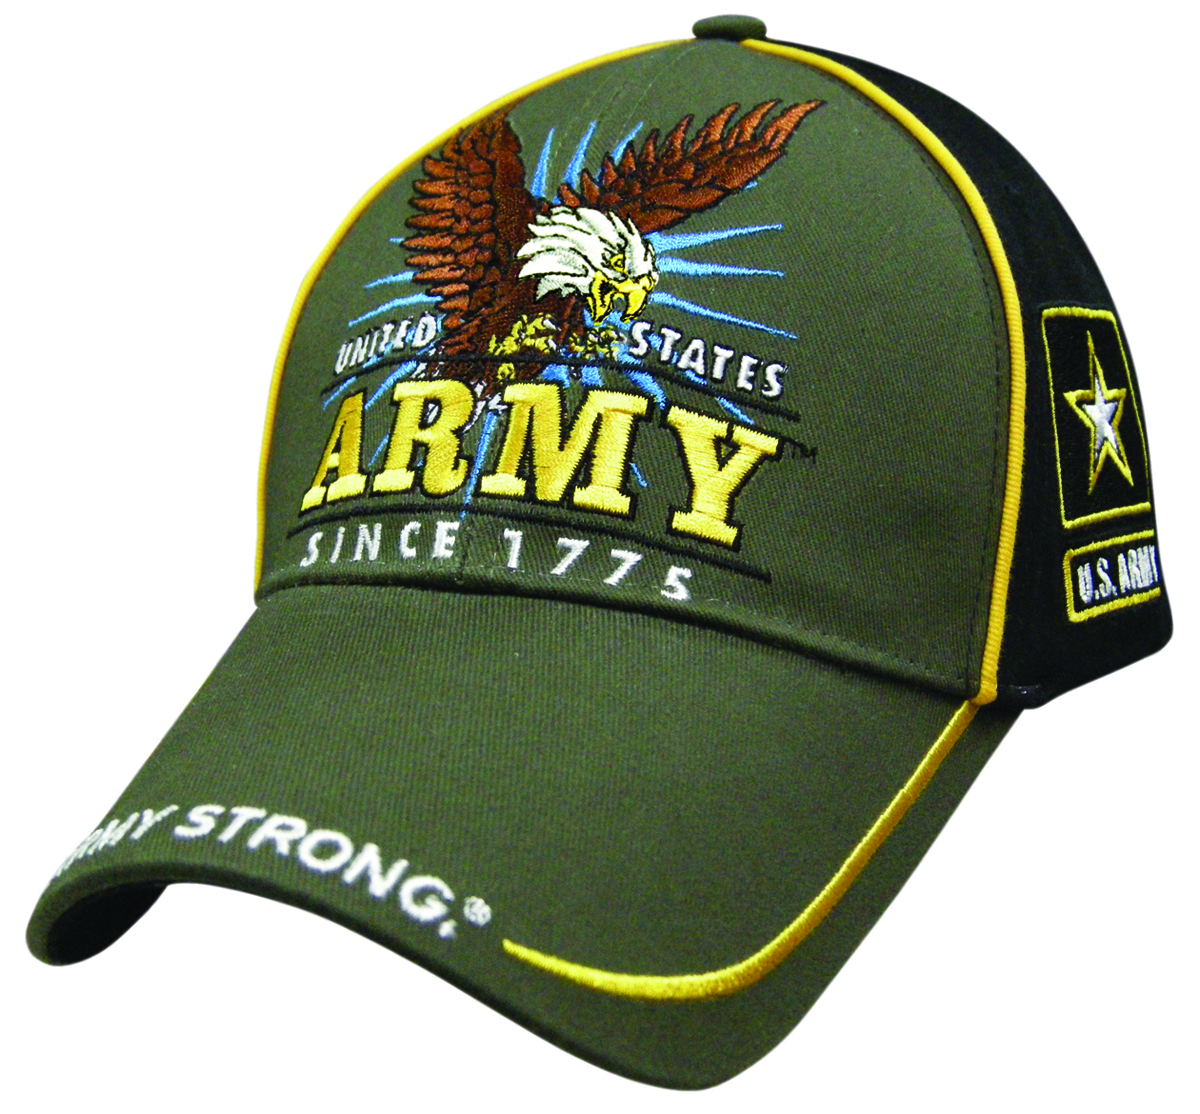 Licensed U S Army Veteran Amp Army Strong Since 1775 With